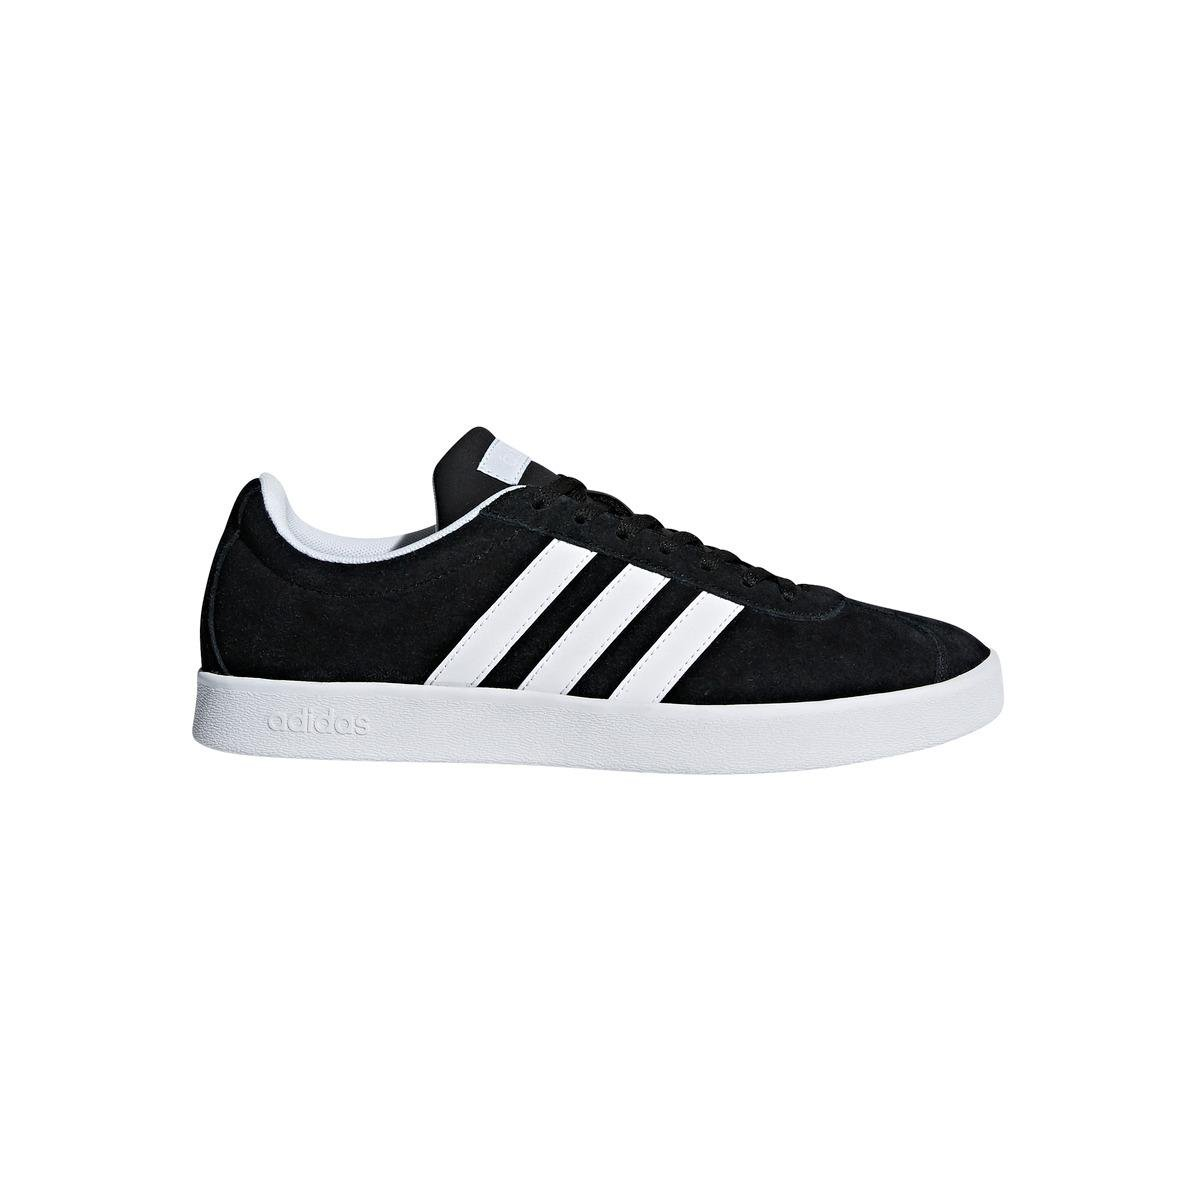 adidas Vl Court 2.0 Casual Trainers in Black - Save 47% - Lyst e21adcee0